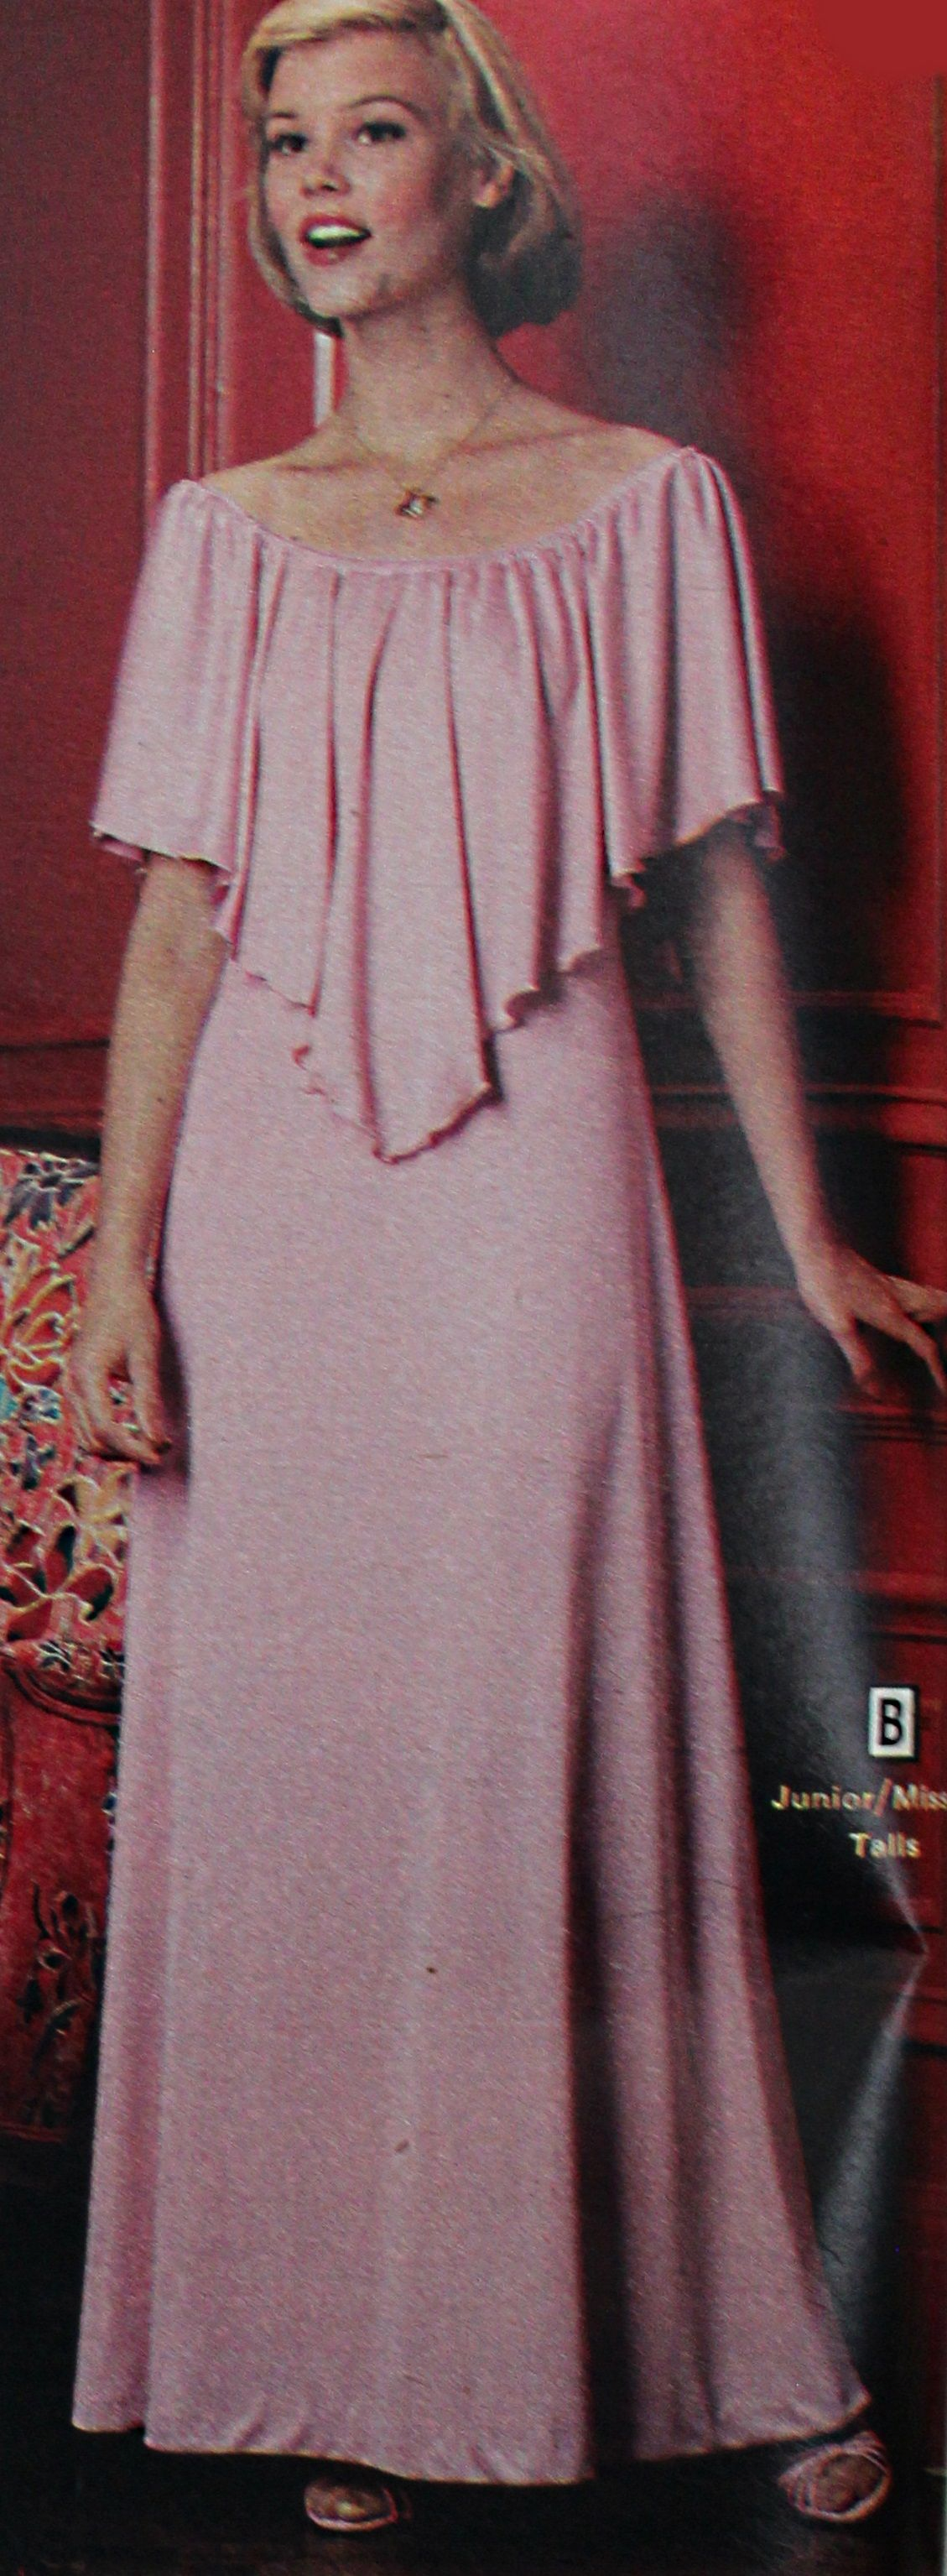 1978 Pink Evening Gown Evening Dress Fashion 1970s Fashion Women Dresses Pink Evening Gowns [ 3070 x 1129 Pixel ]